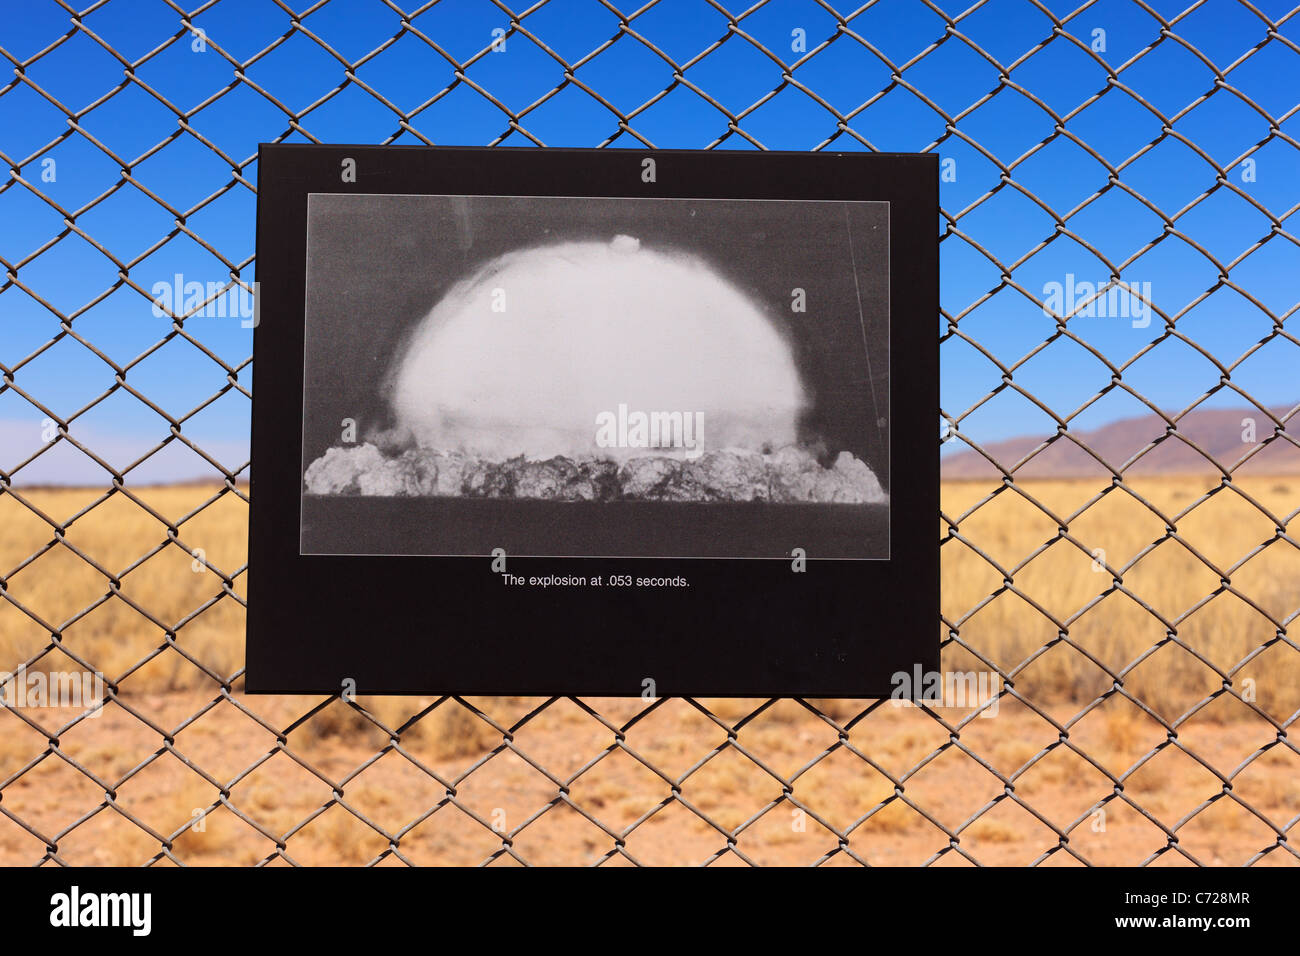 A photograph on display at Trinity Site in New Mexico showing the world's first nuclear device being exploded - Stock Image